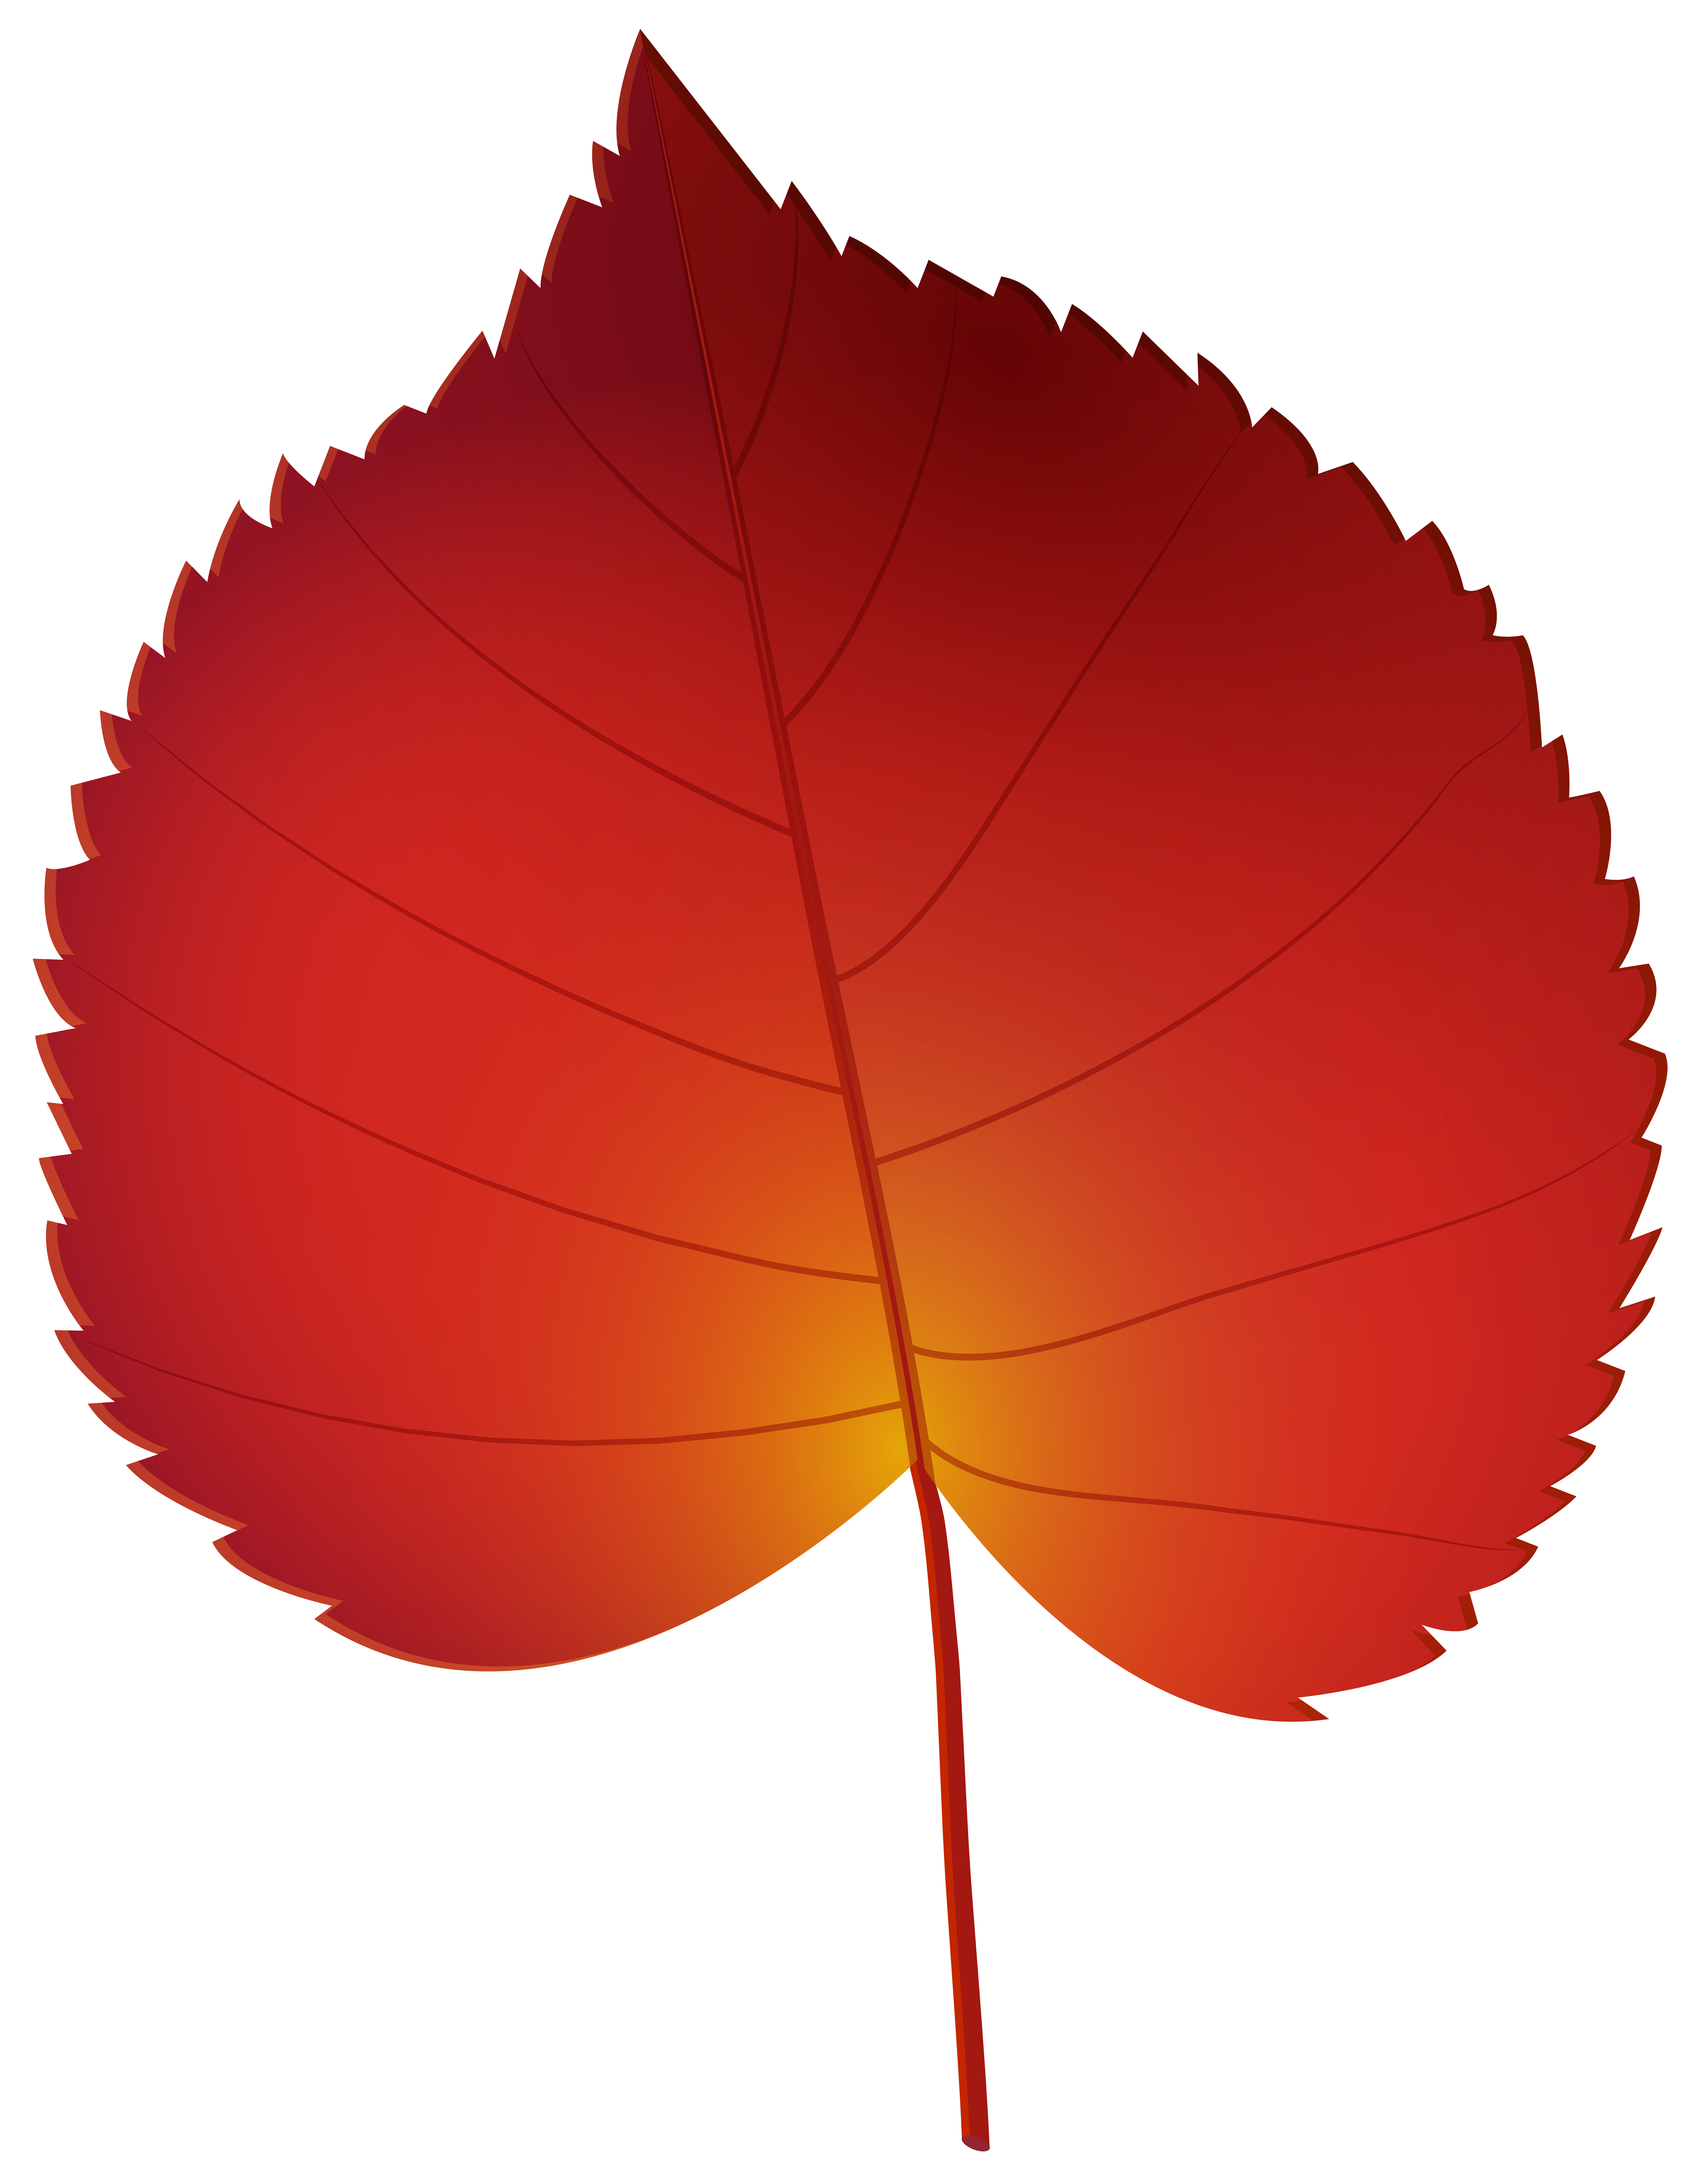 Red autumn leaf png. Leaves clipart leaft